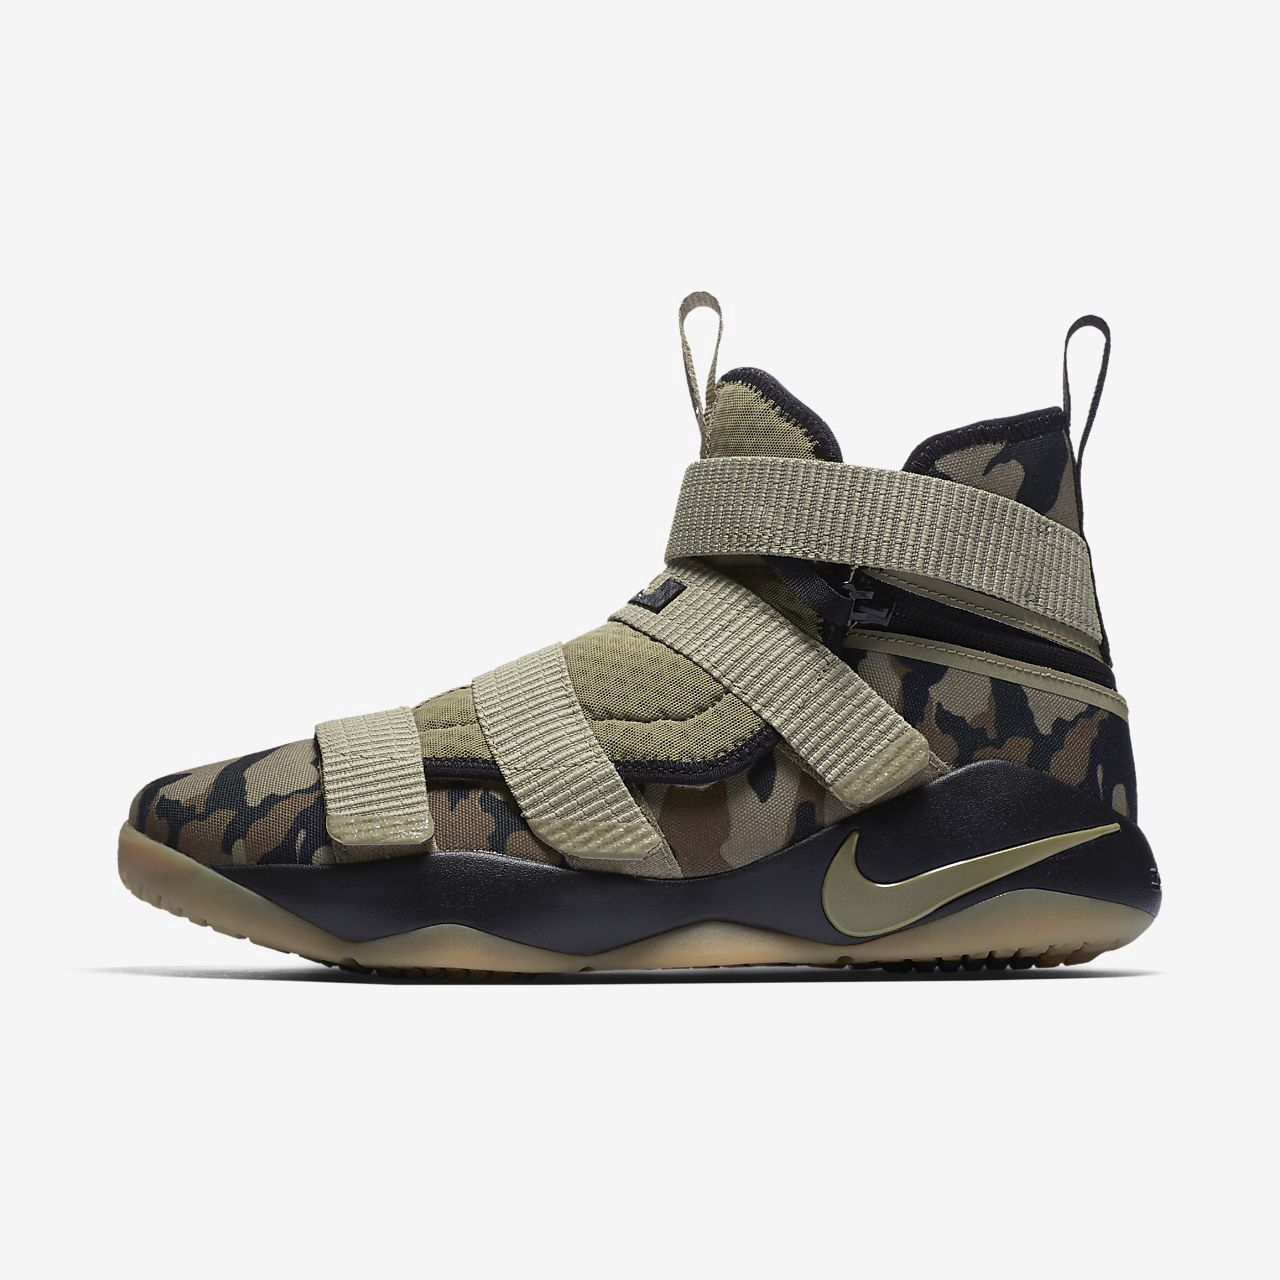 finest selection 91aac 64a6b Nike Lebron Soldier Xi Flyease (Extra Wide) Basketball Shoe ...